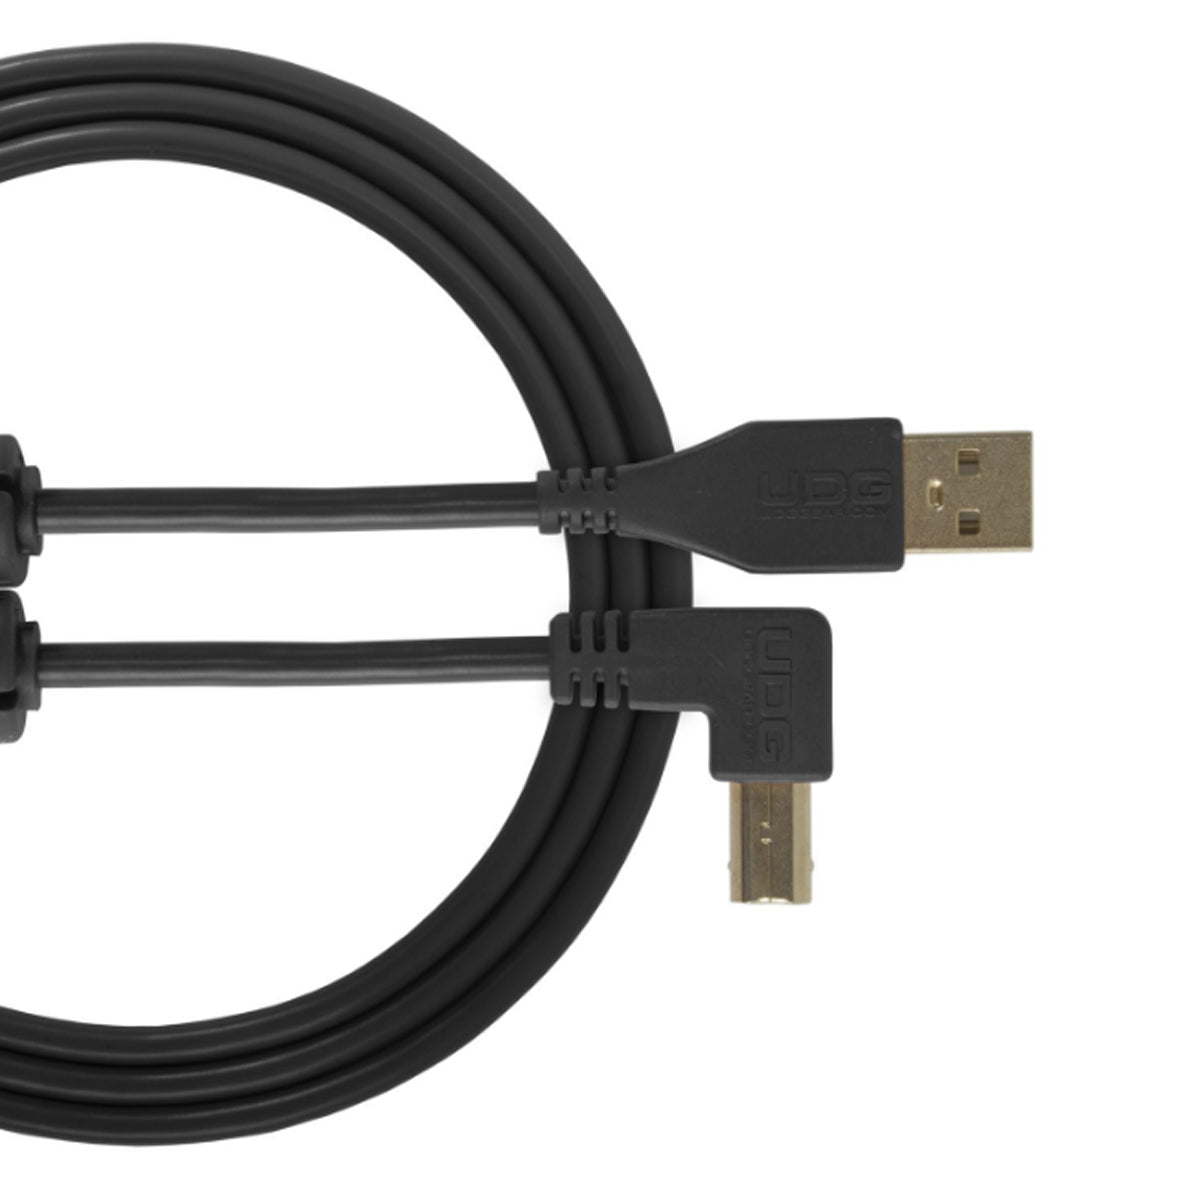 UDG Ultimate U95005 USB2 Cable A-B Black Angled 2m